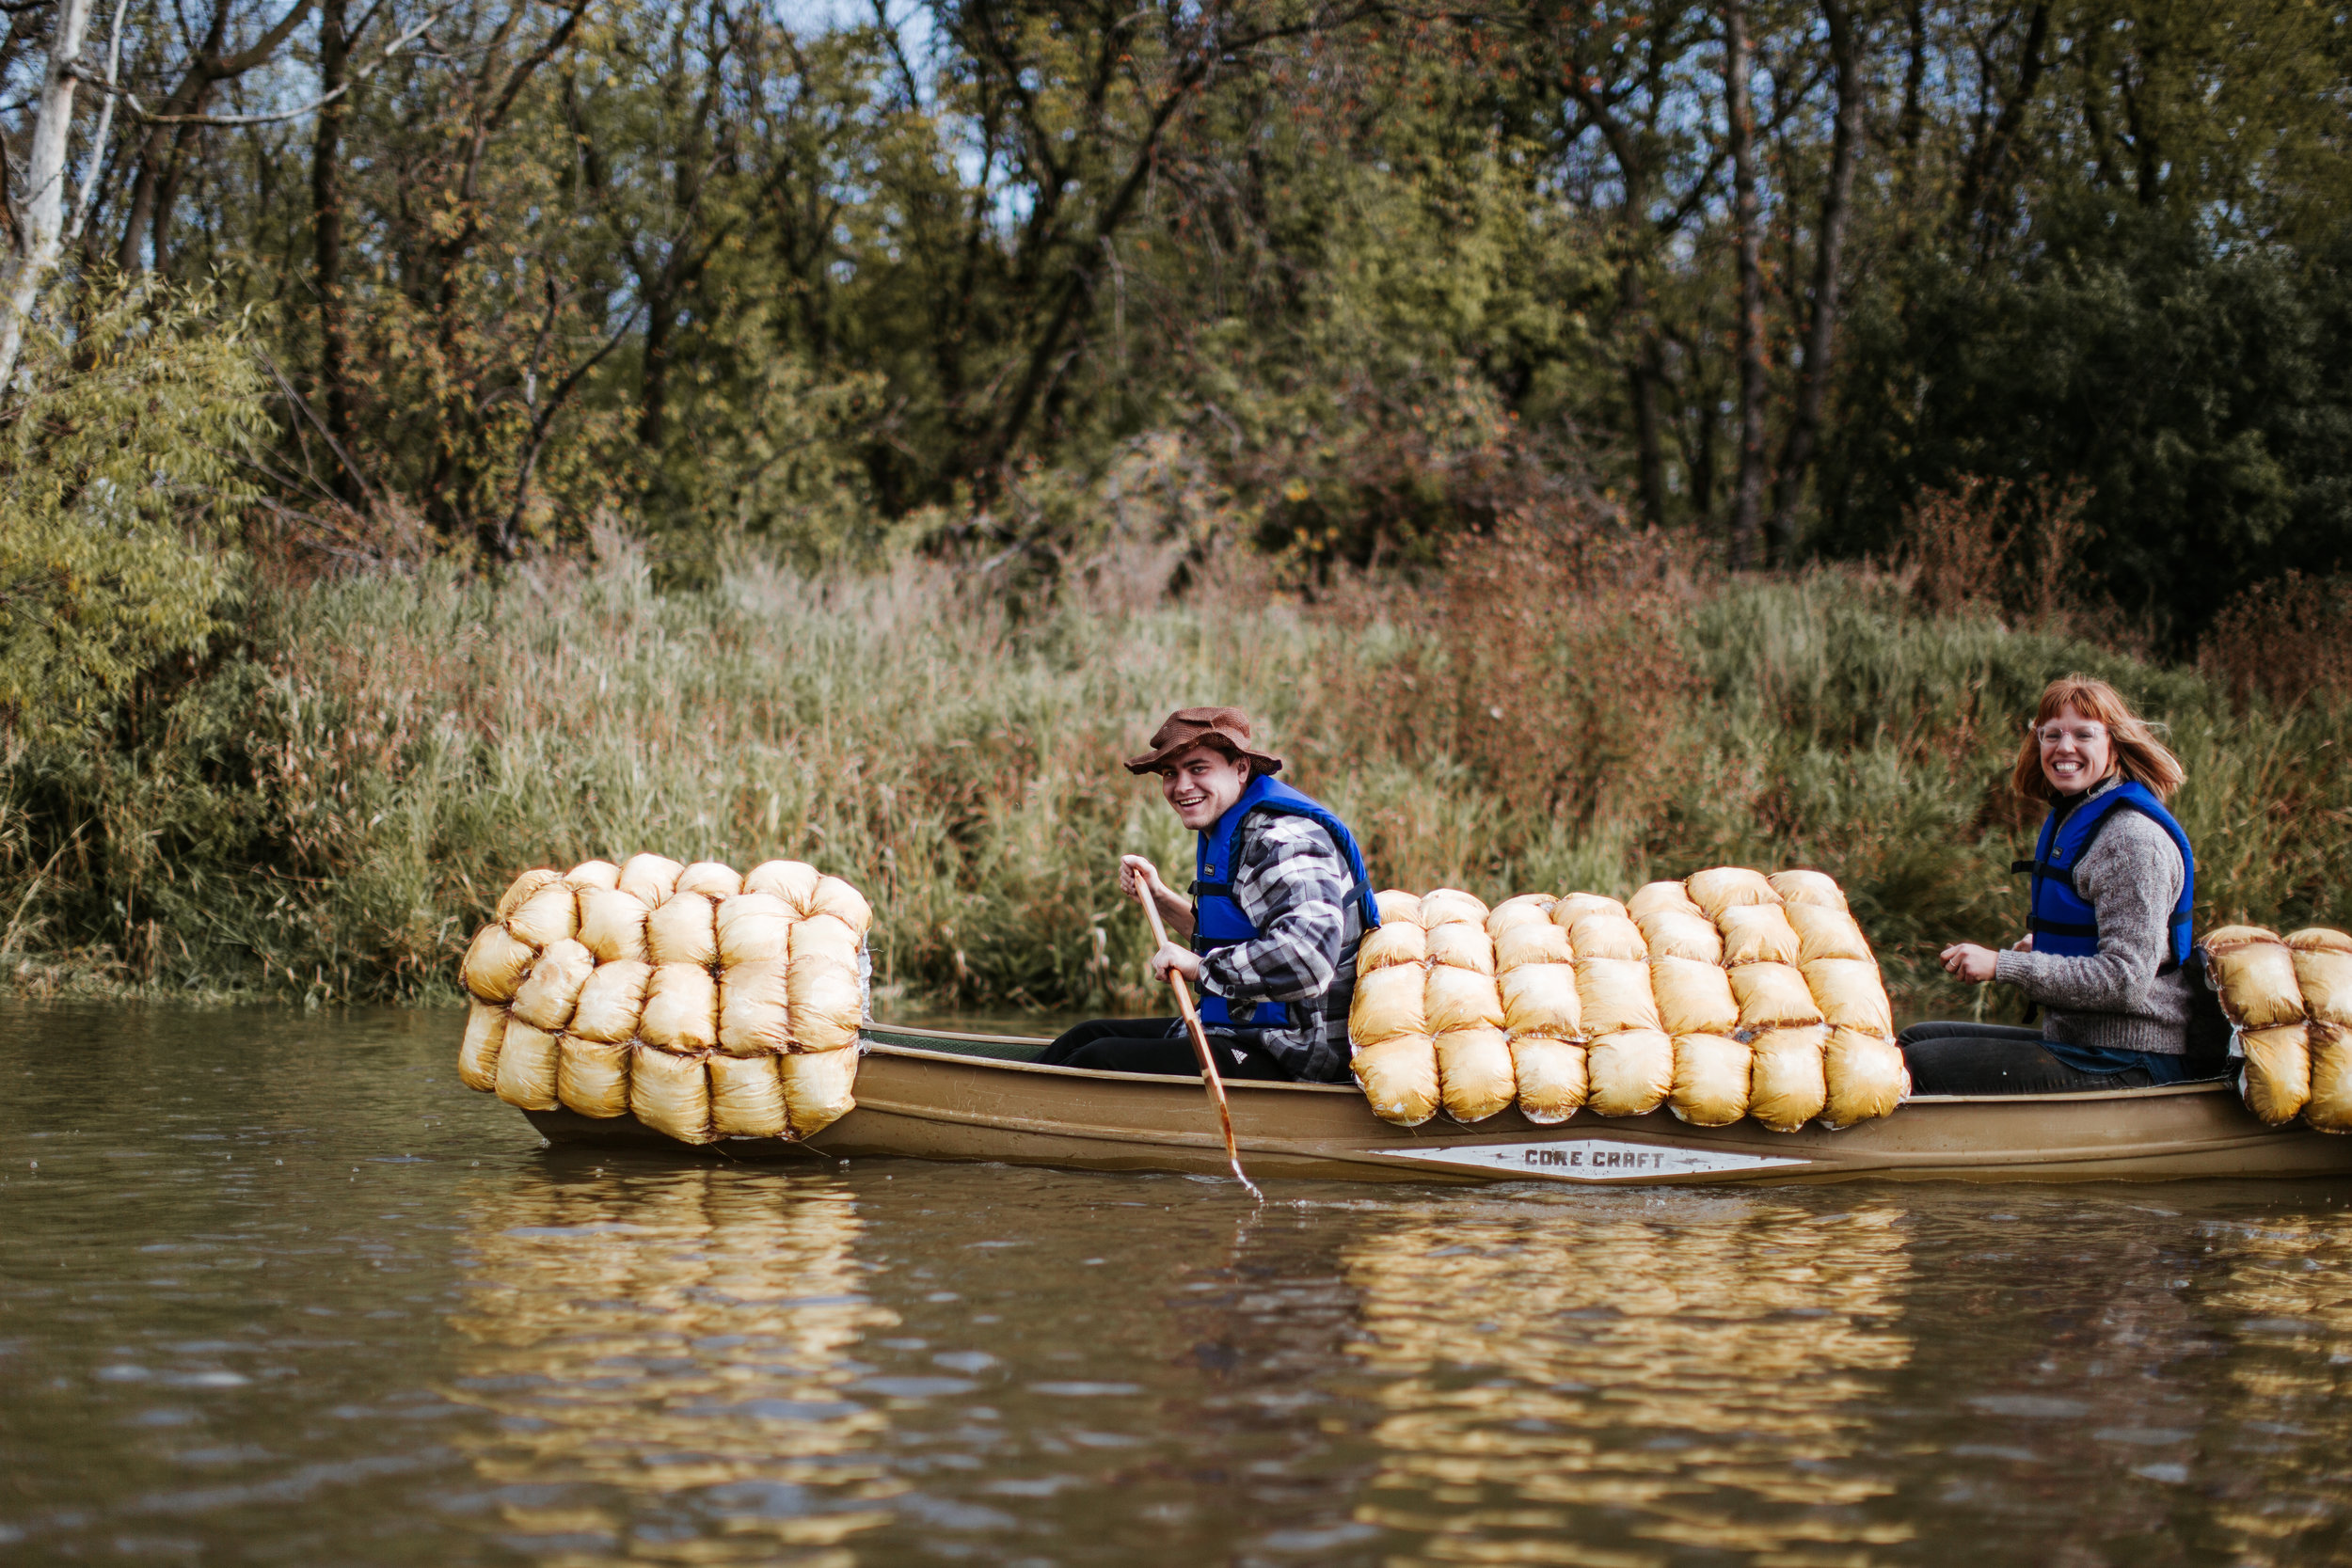 Corn cob commissioned by artist, Olivia Bain (in canoe). Photos by Friesen Photography.